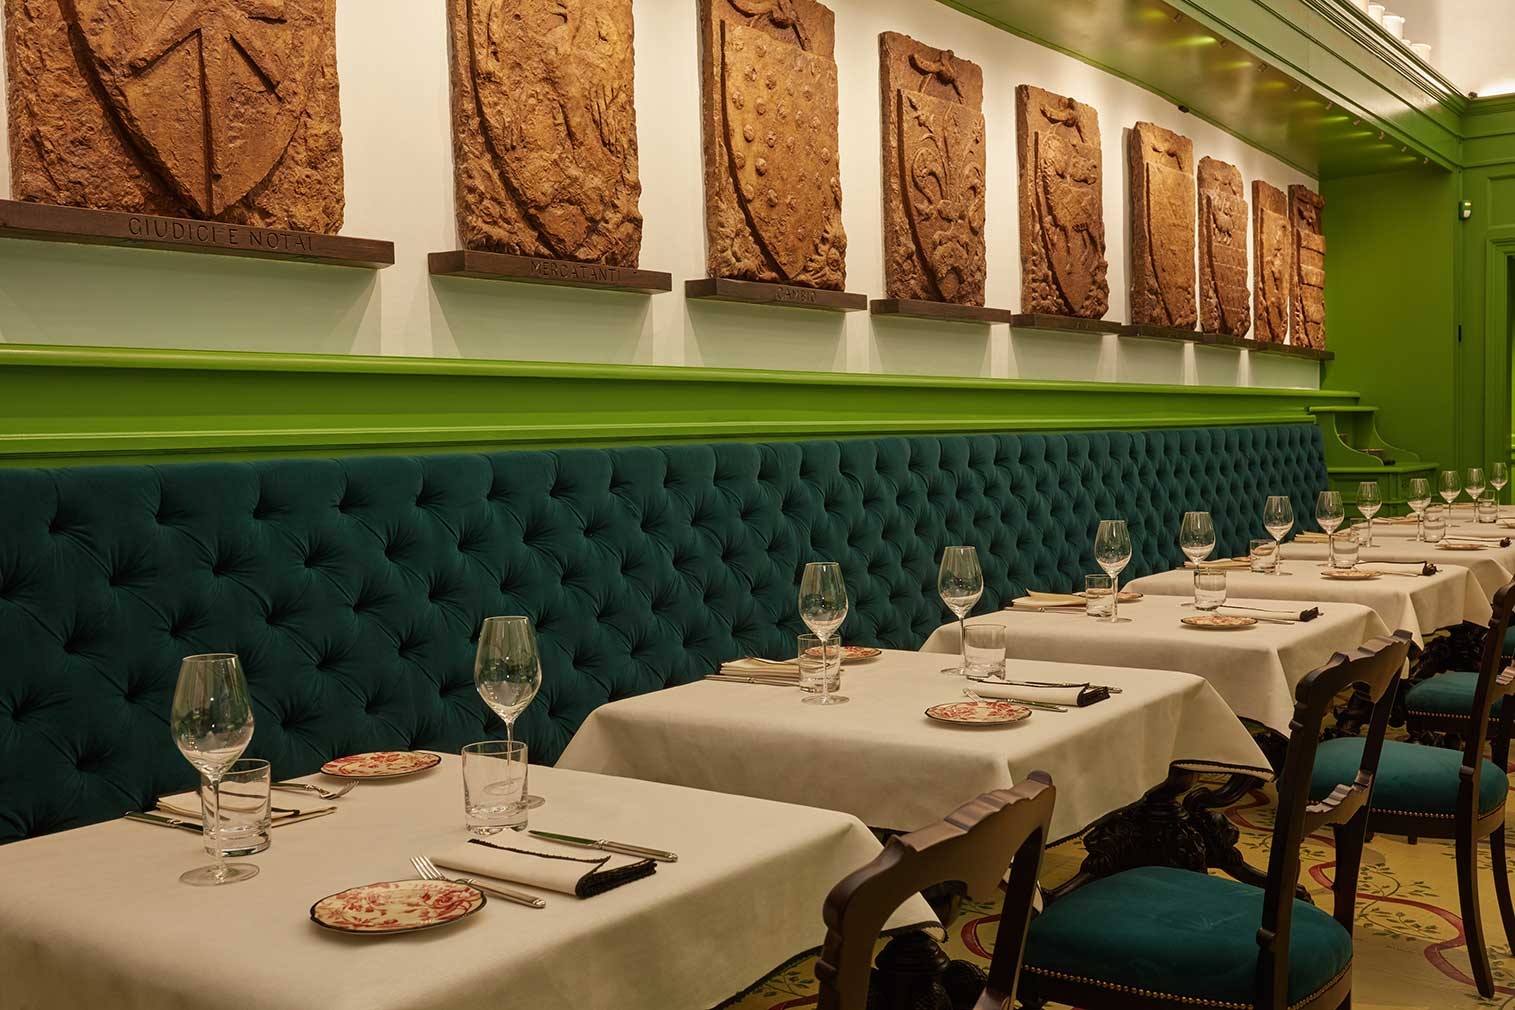 Gucci's First Ever Restaurant Comes With Michelin-Starred Talent